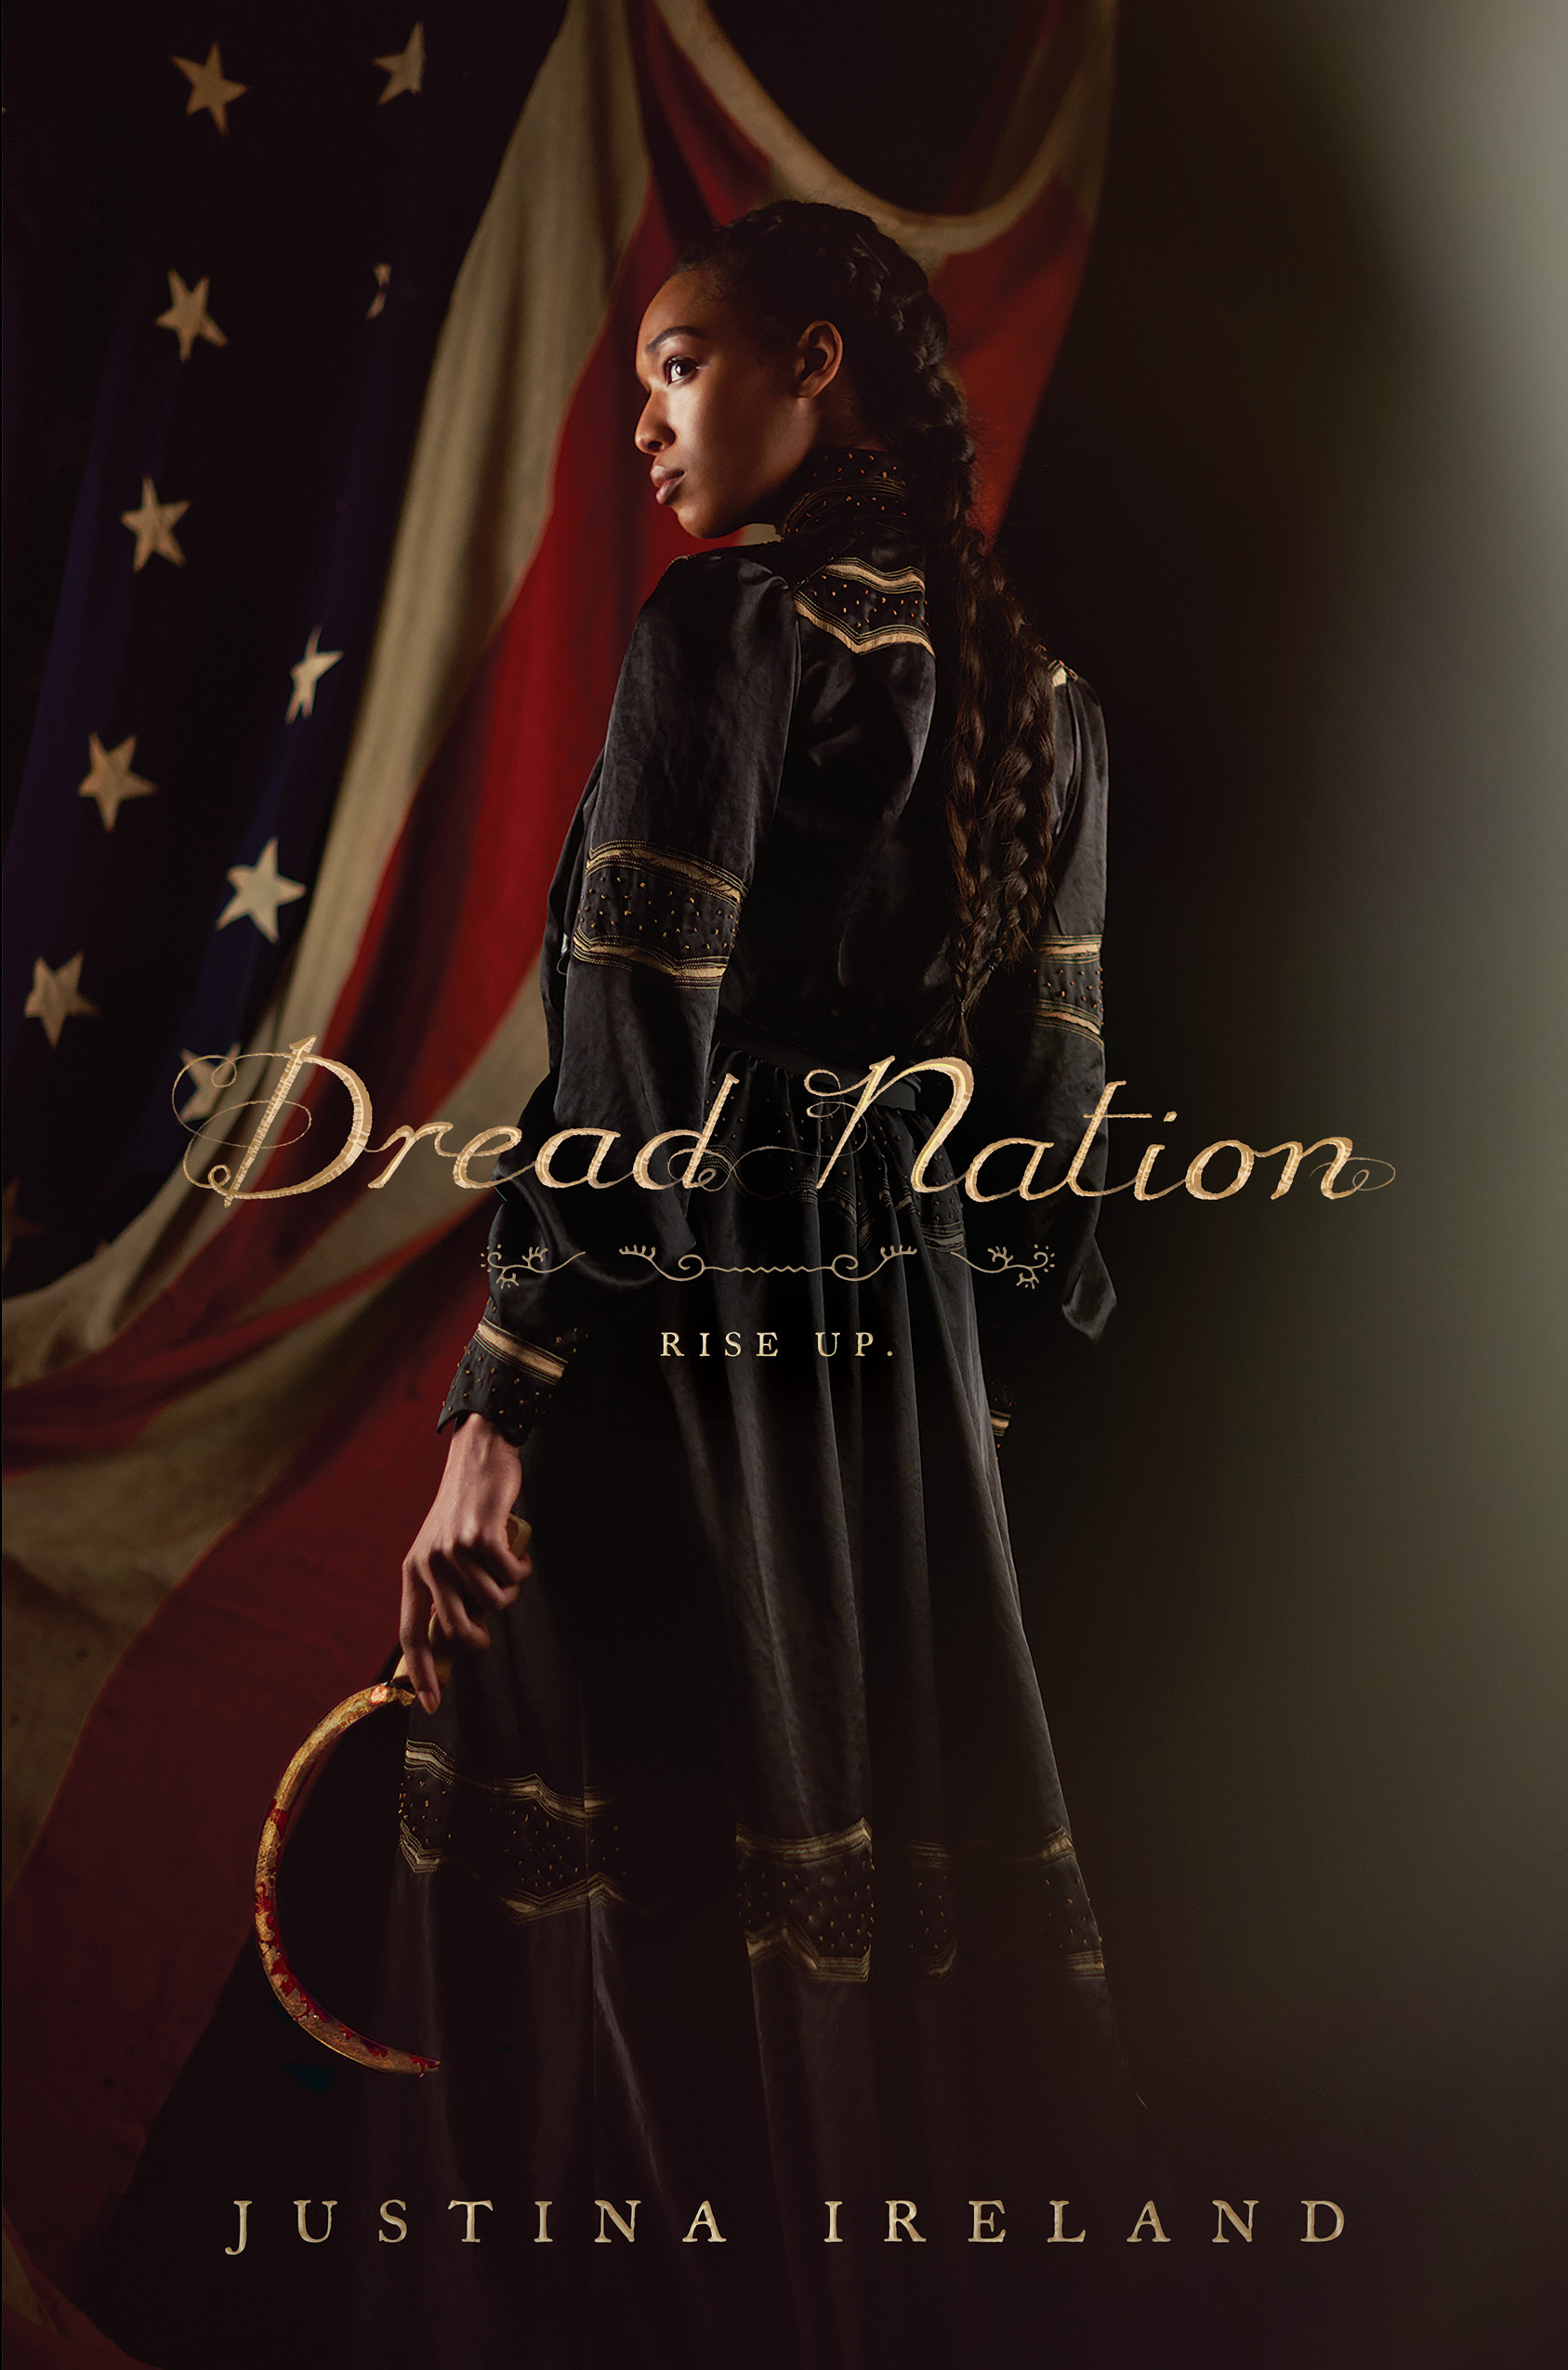 Friday Reads: Dread Nation by Justina Ireland